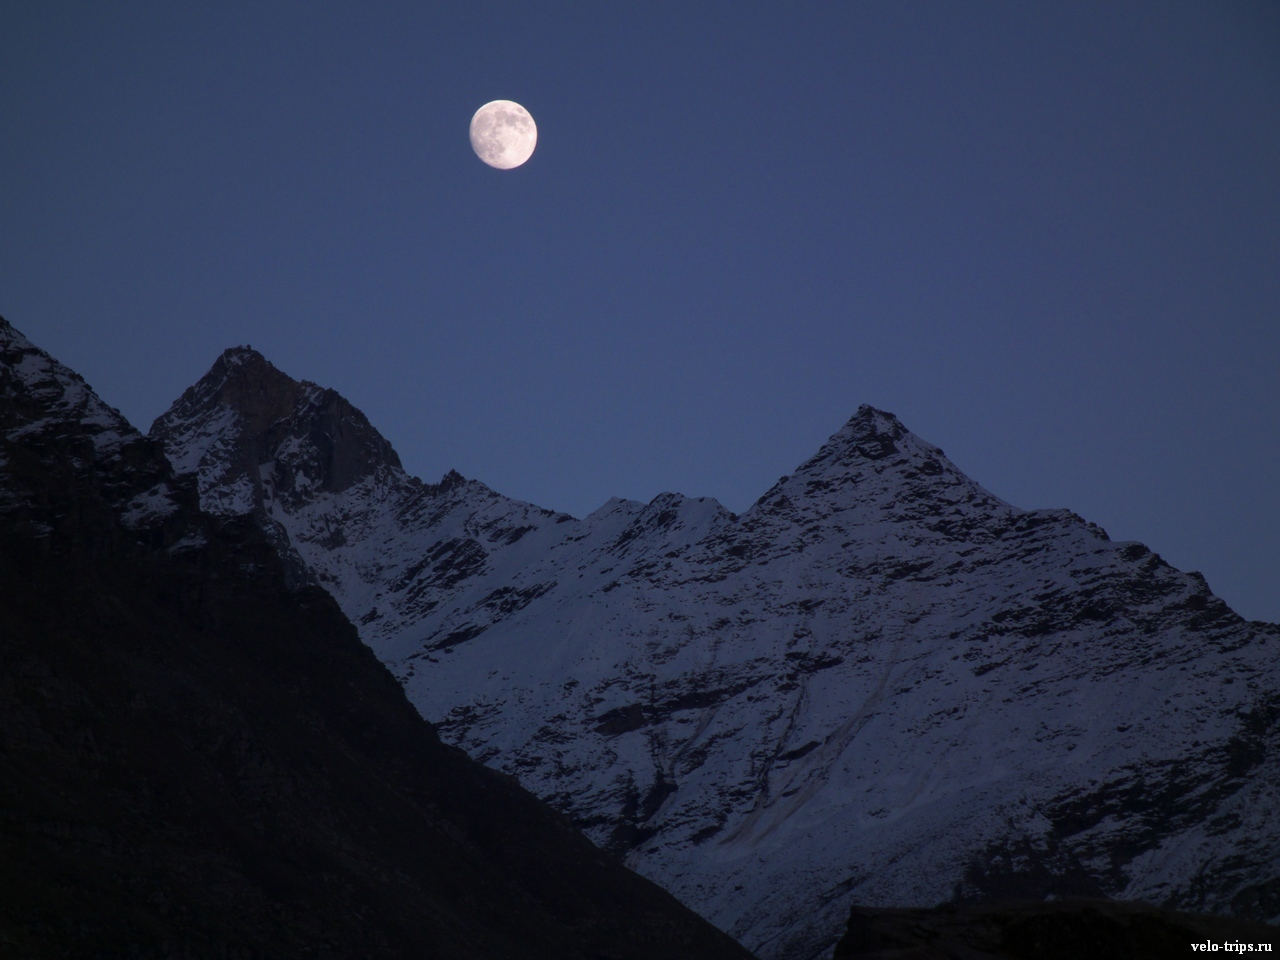 Mountains in the night under moonlight in Chandra valley, Himalaya